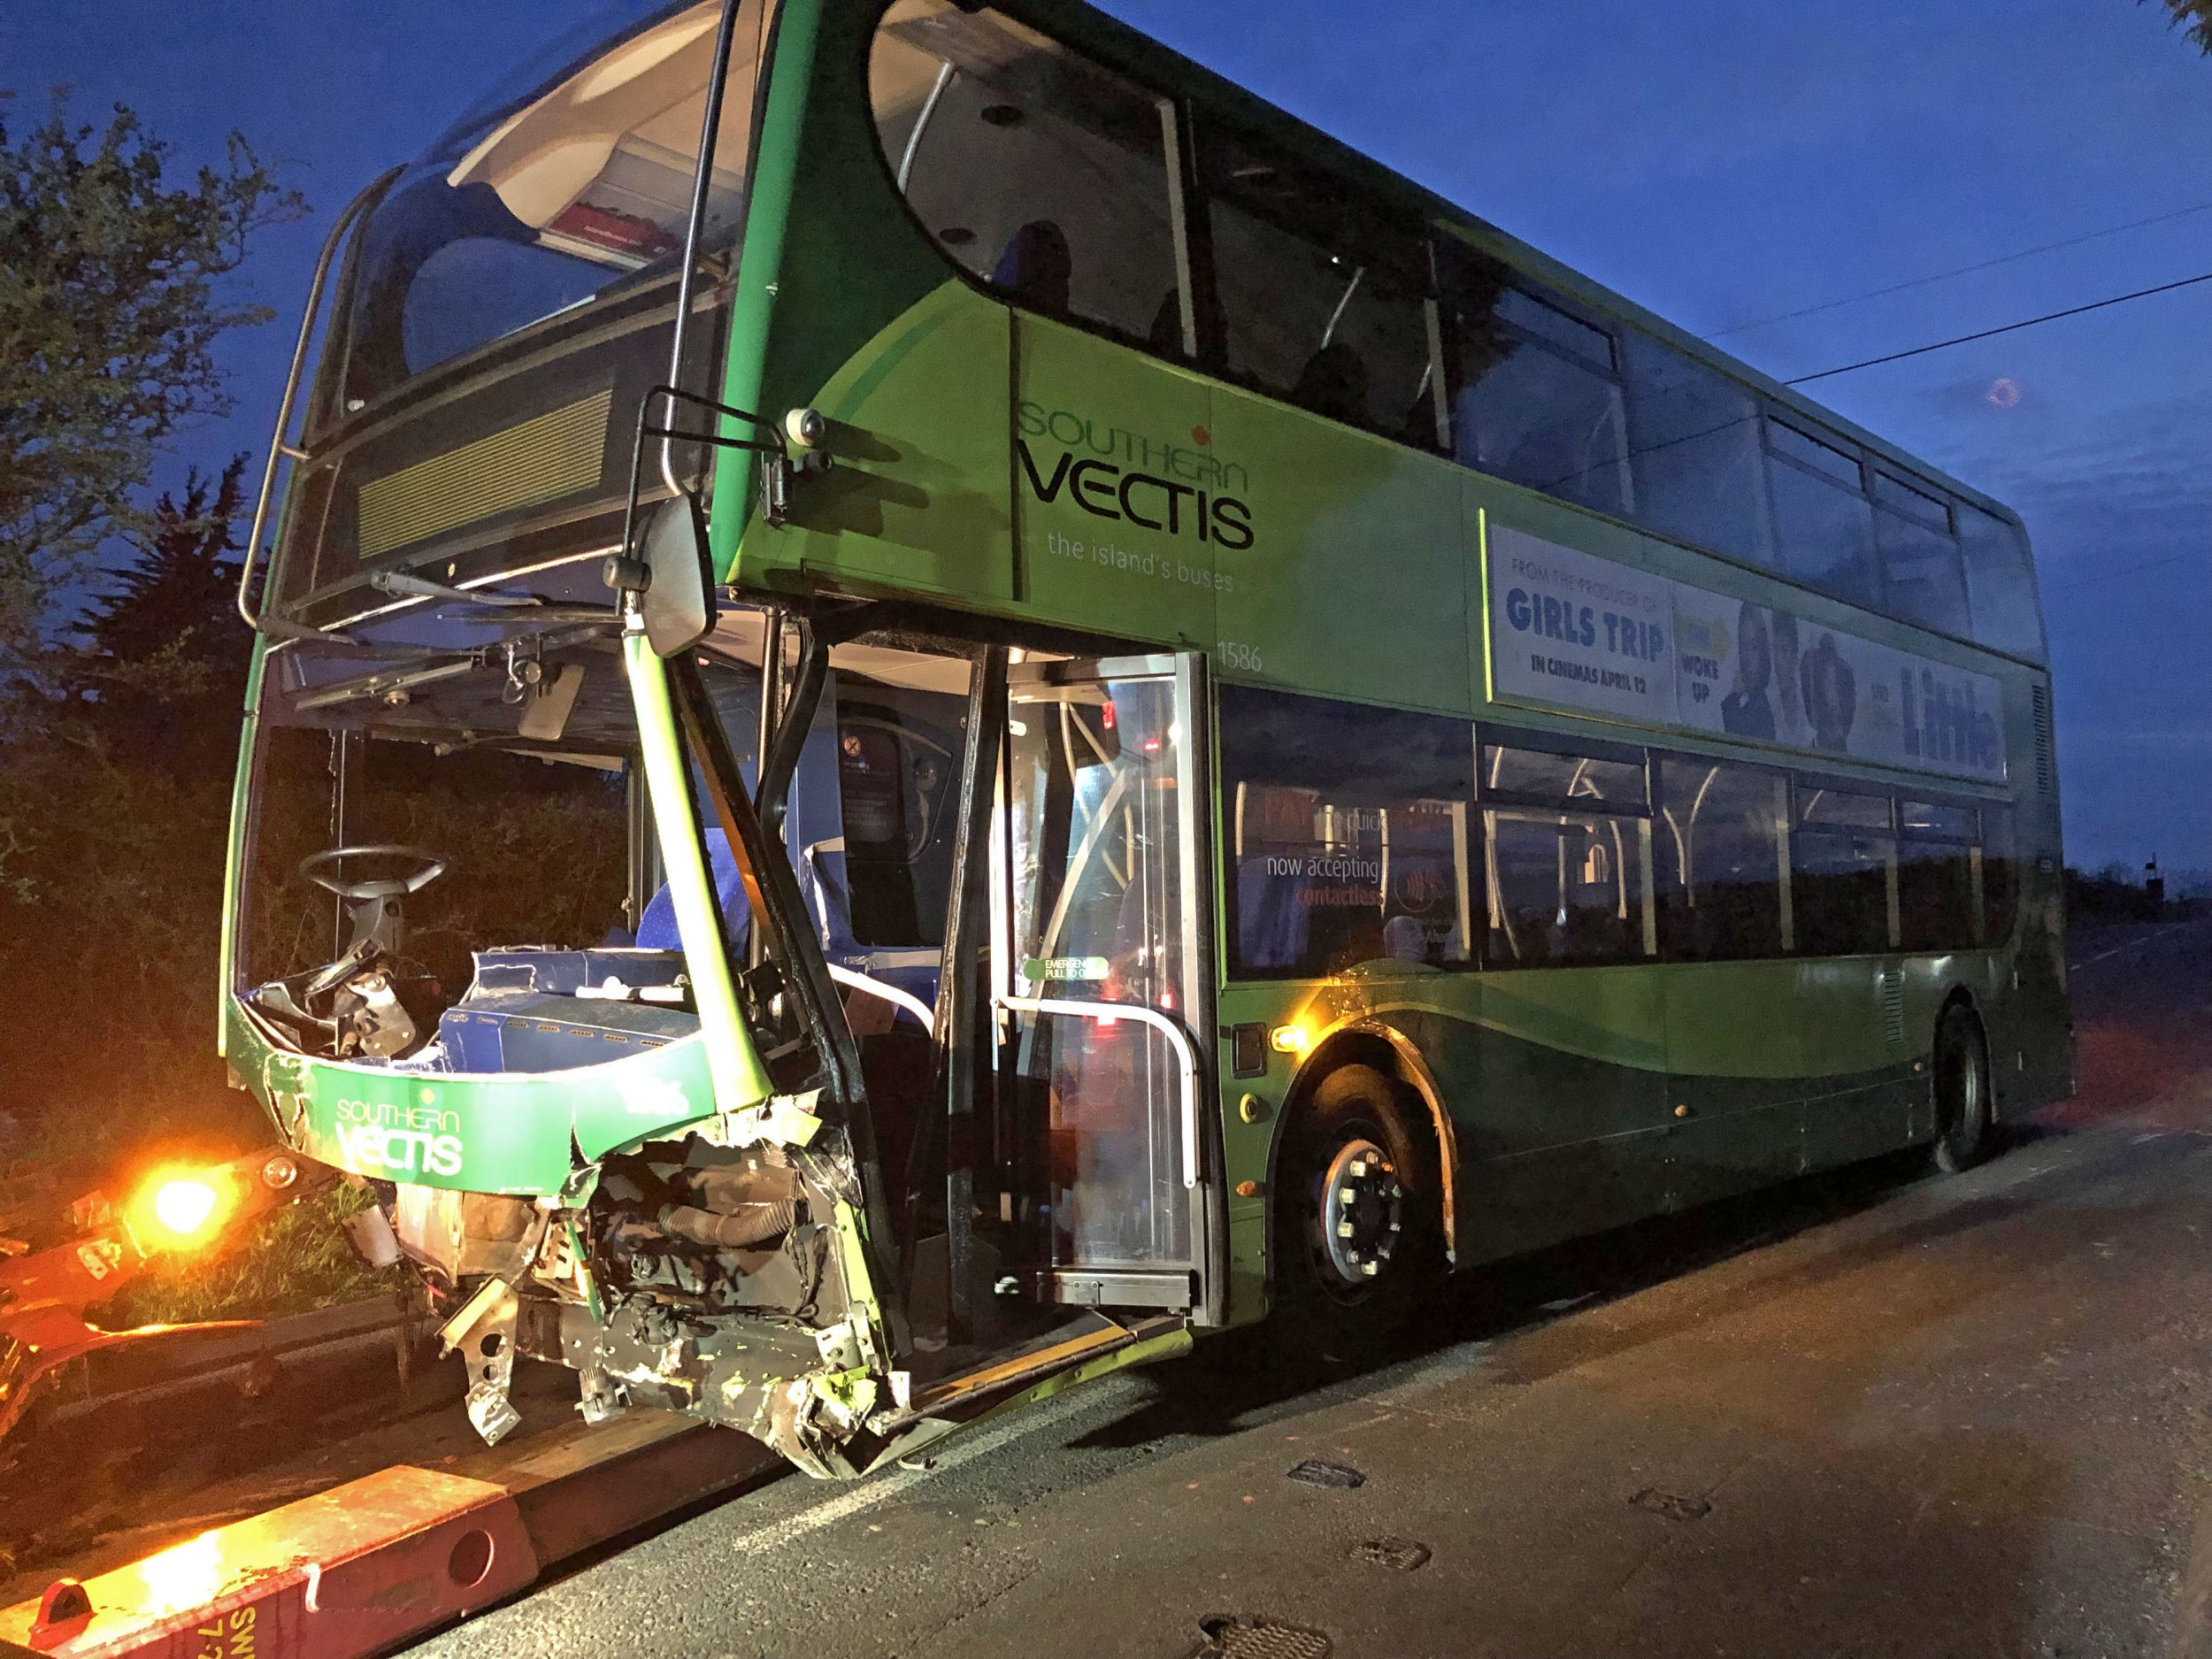 The scene on the Isle of Wight where one person died in a crash involving a double decker bus and two cars. PRESS ASSOCIATION Photo. Picture date: Sunday April 14, 2019. See PA story POLICE IsleofWight . Photo credit should read: Jennifer Pegler/PA Wire